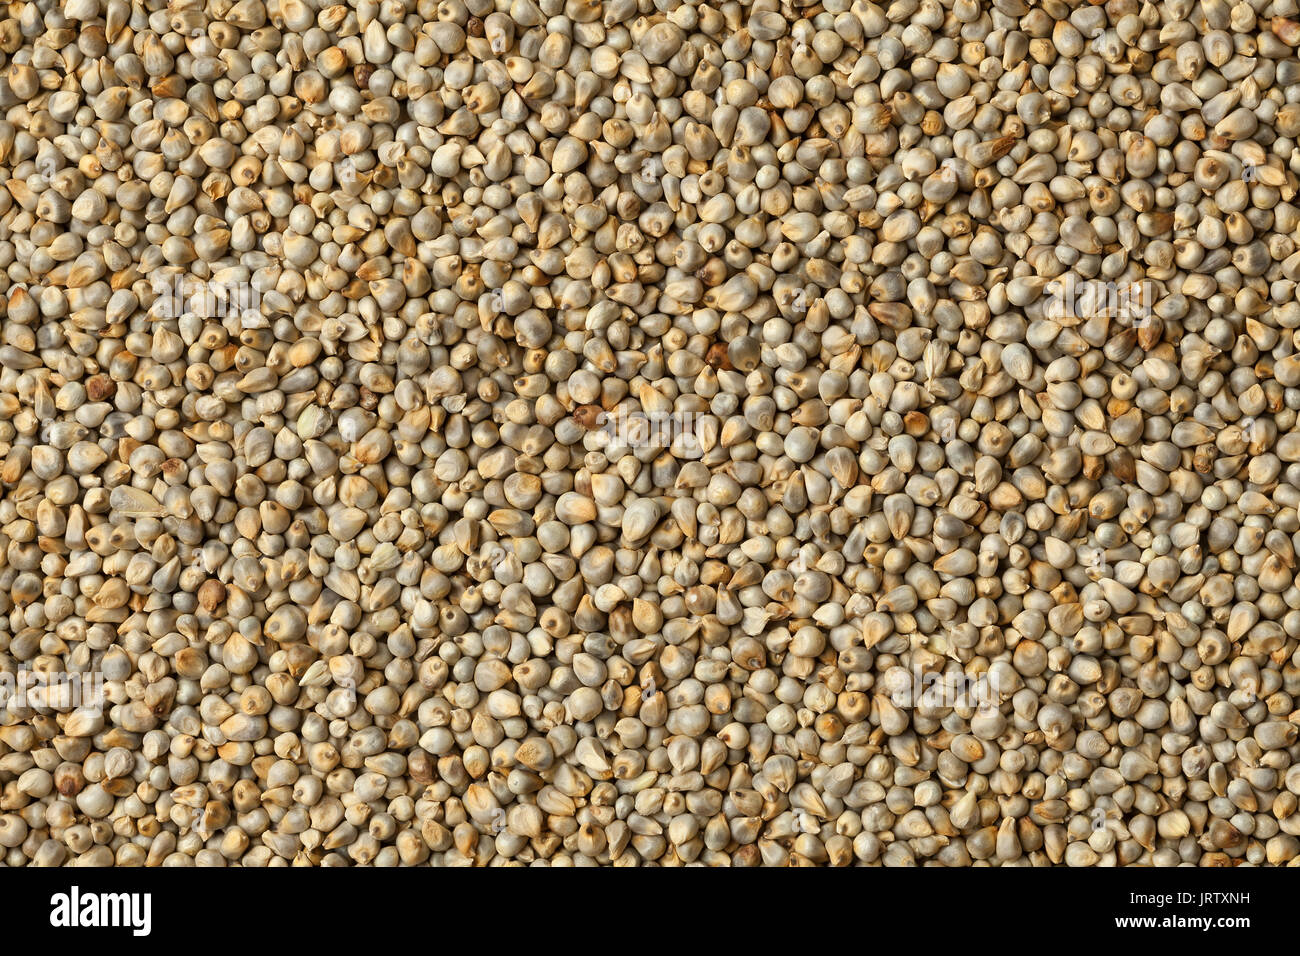 Pearl Millet close up full frame Photo Stock